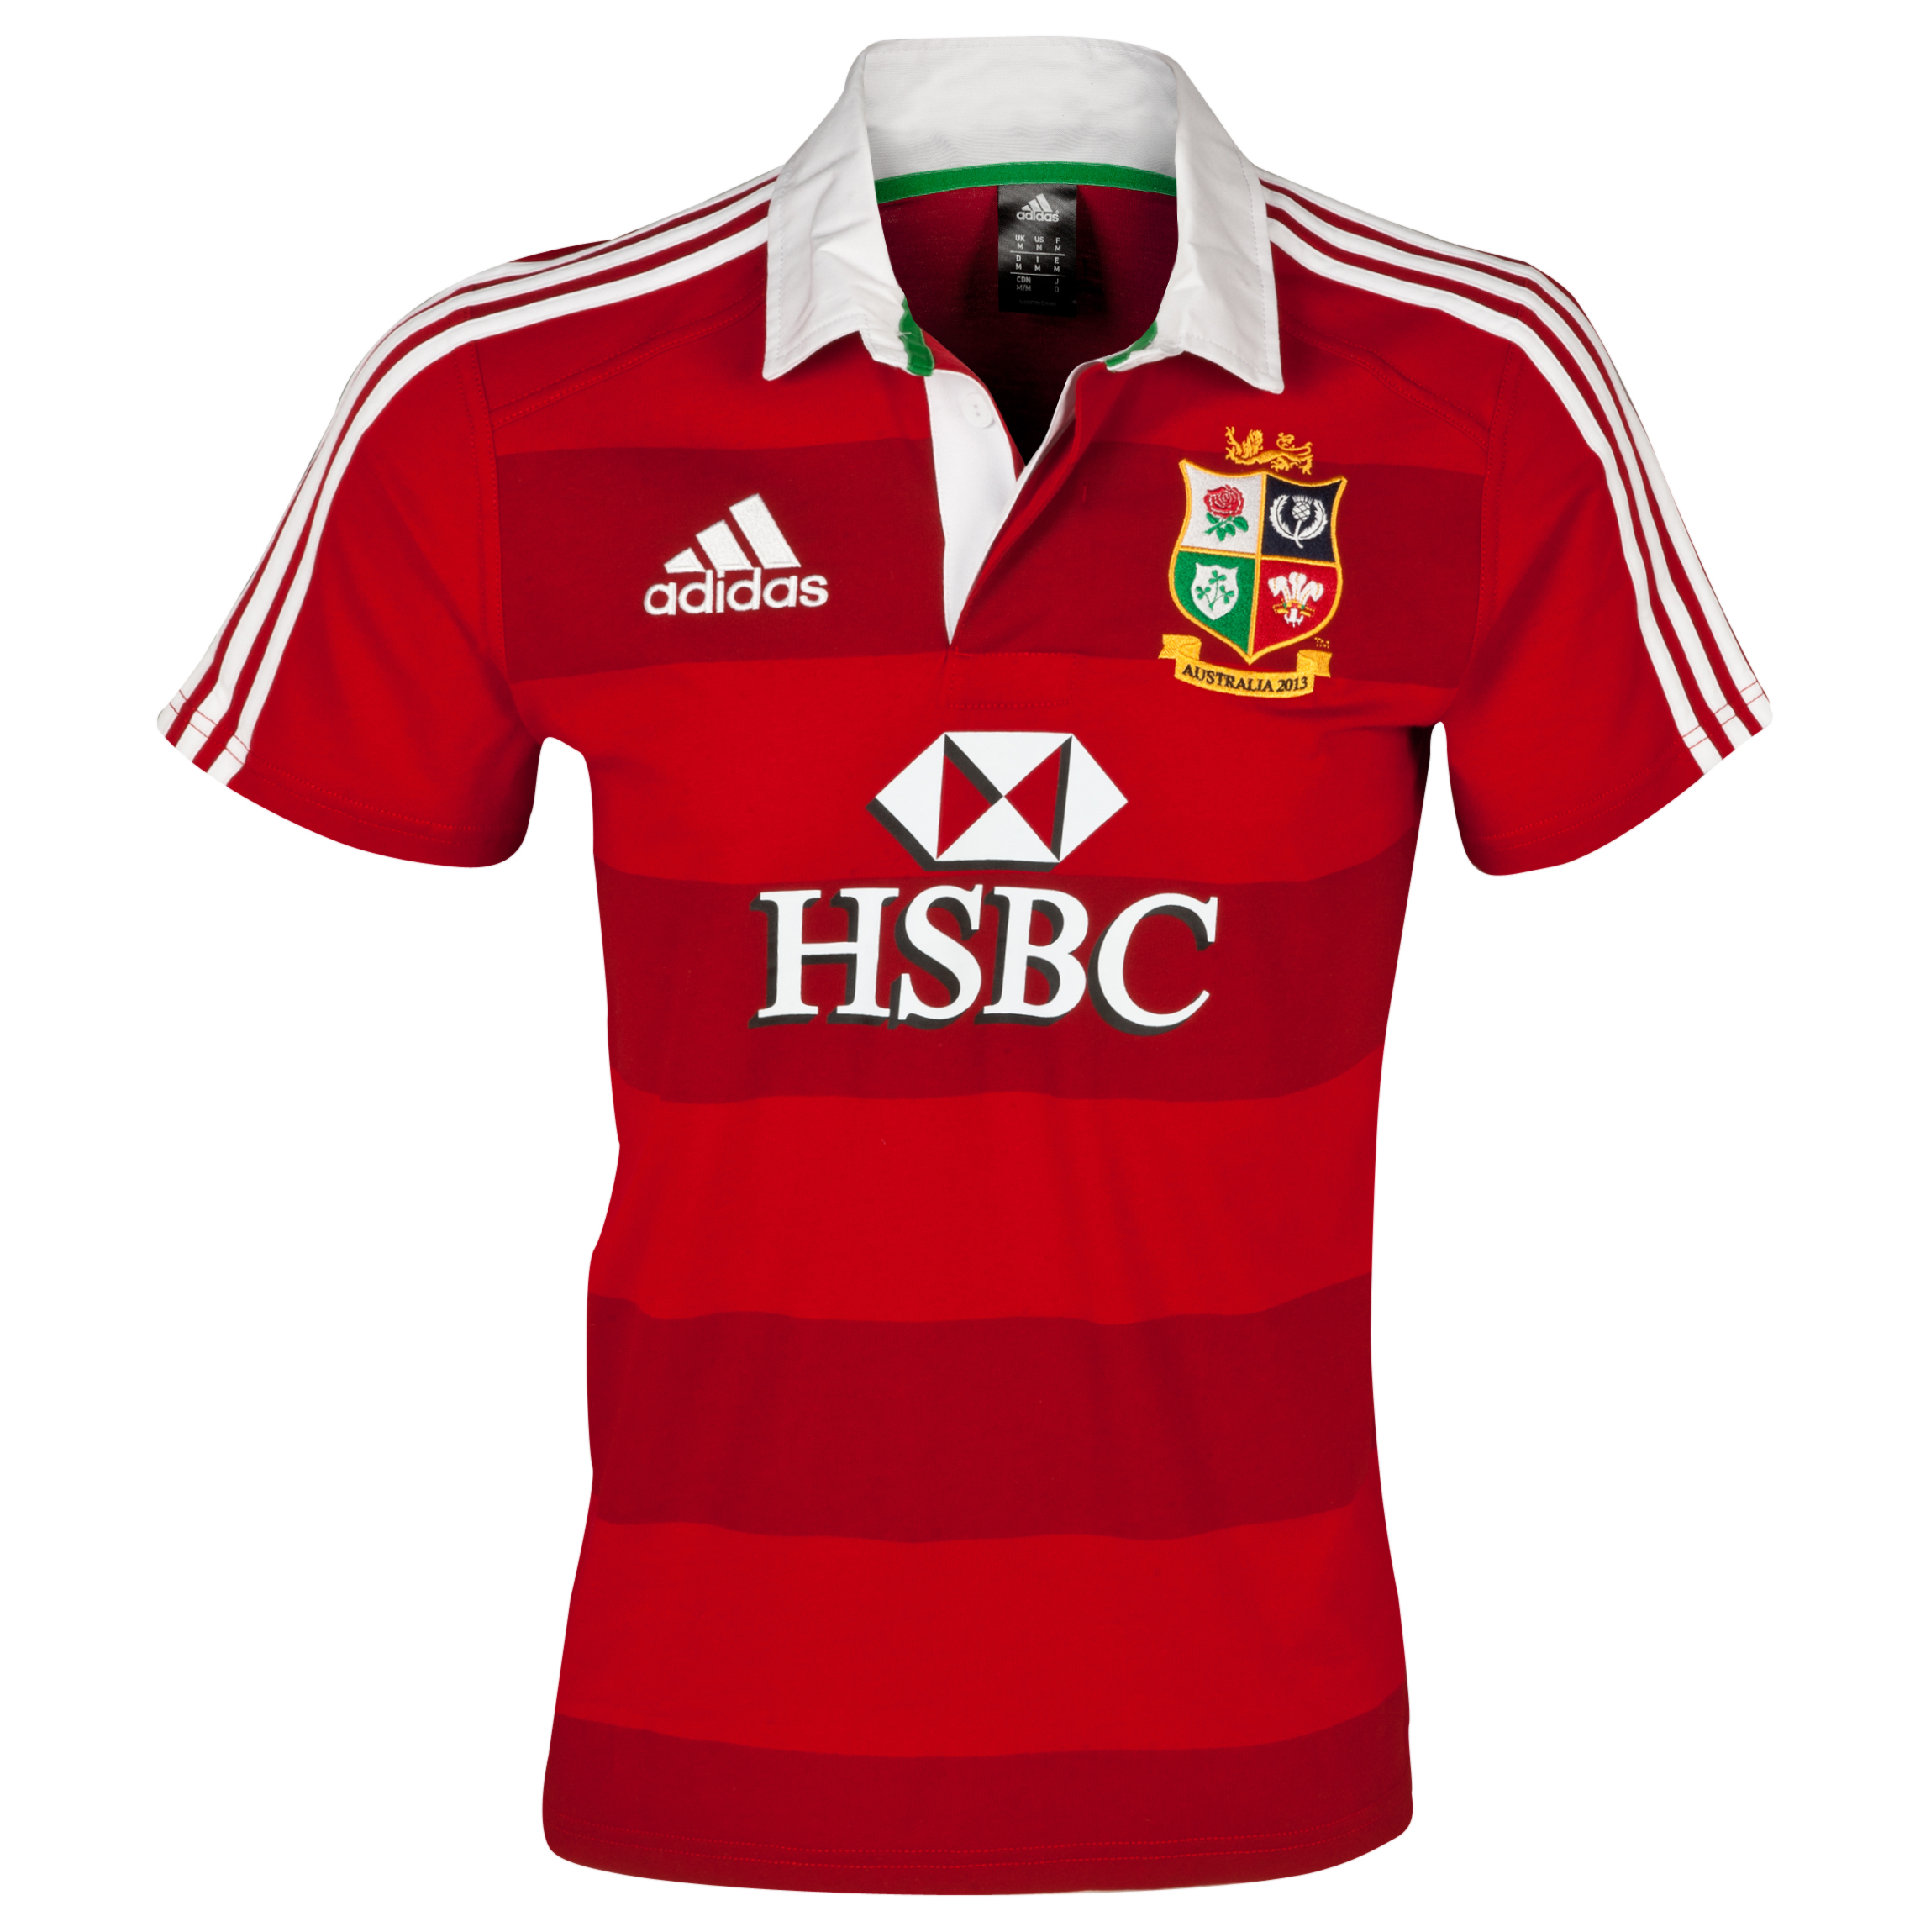 British & Irish Lions Supporters Shirt - University Red/White